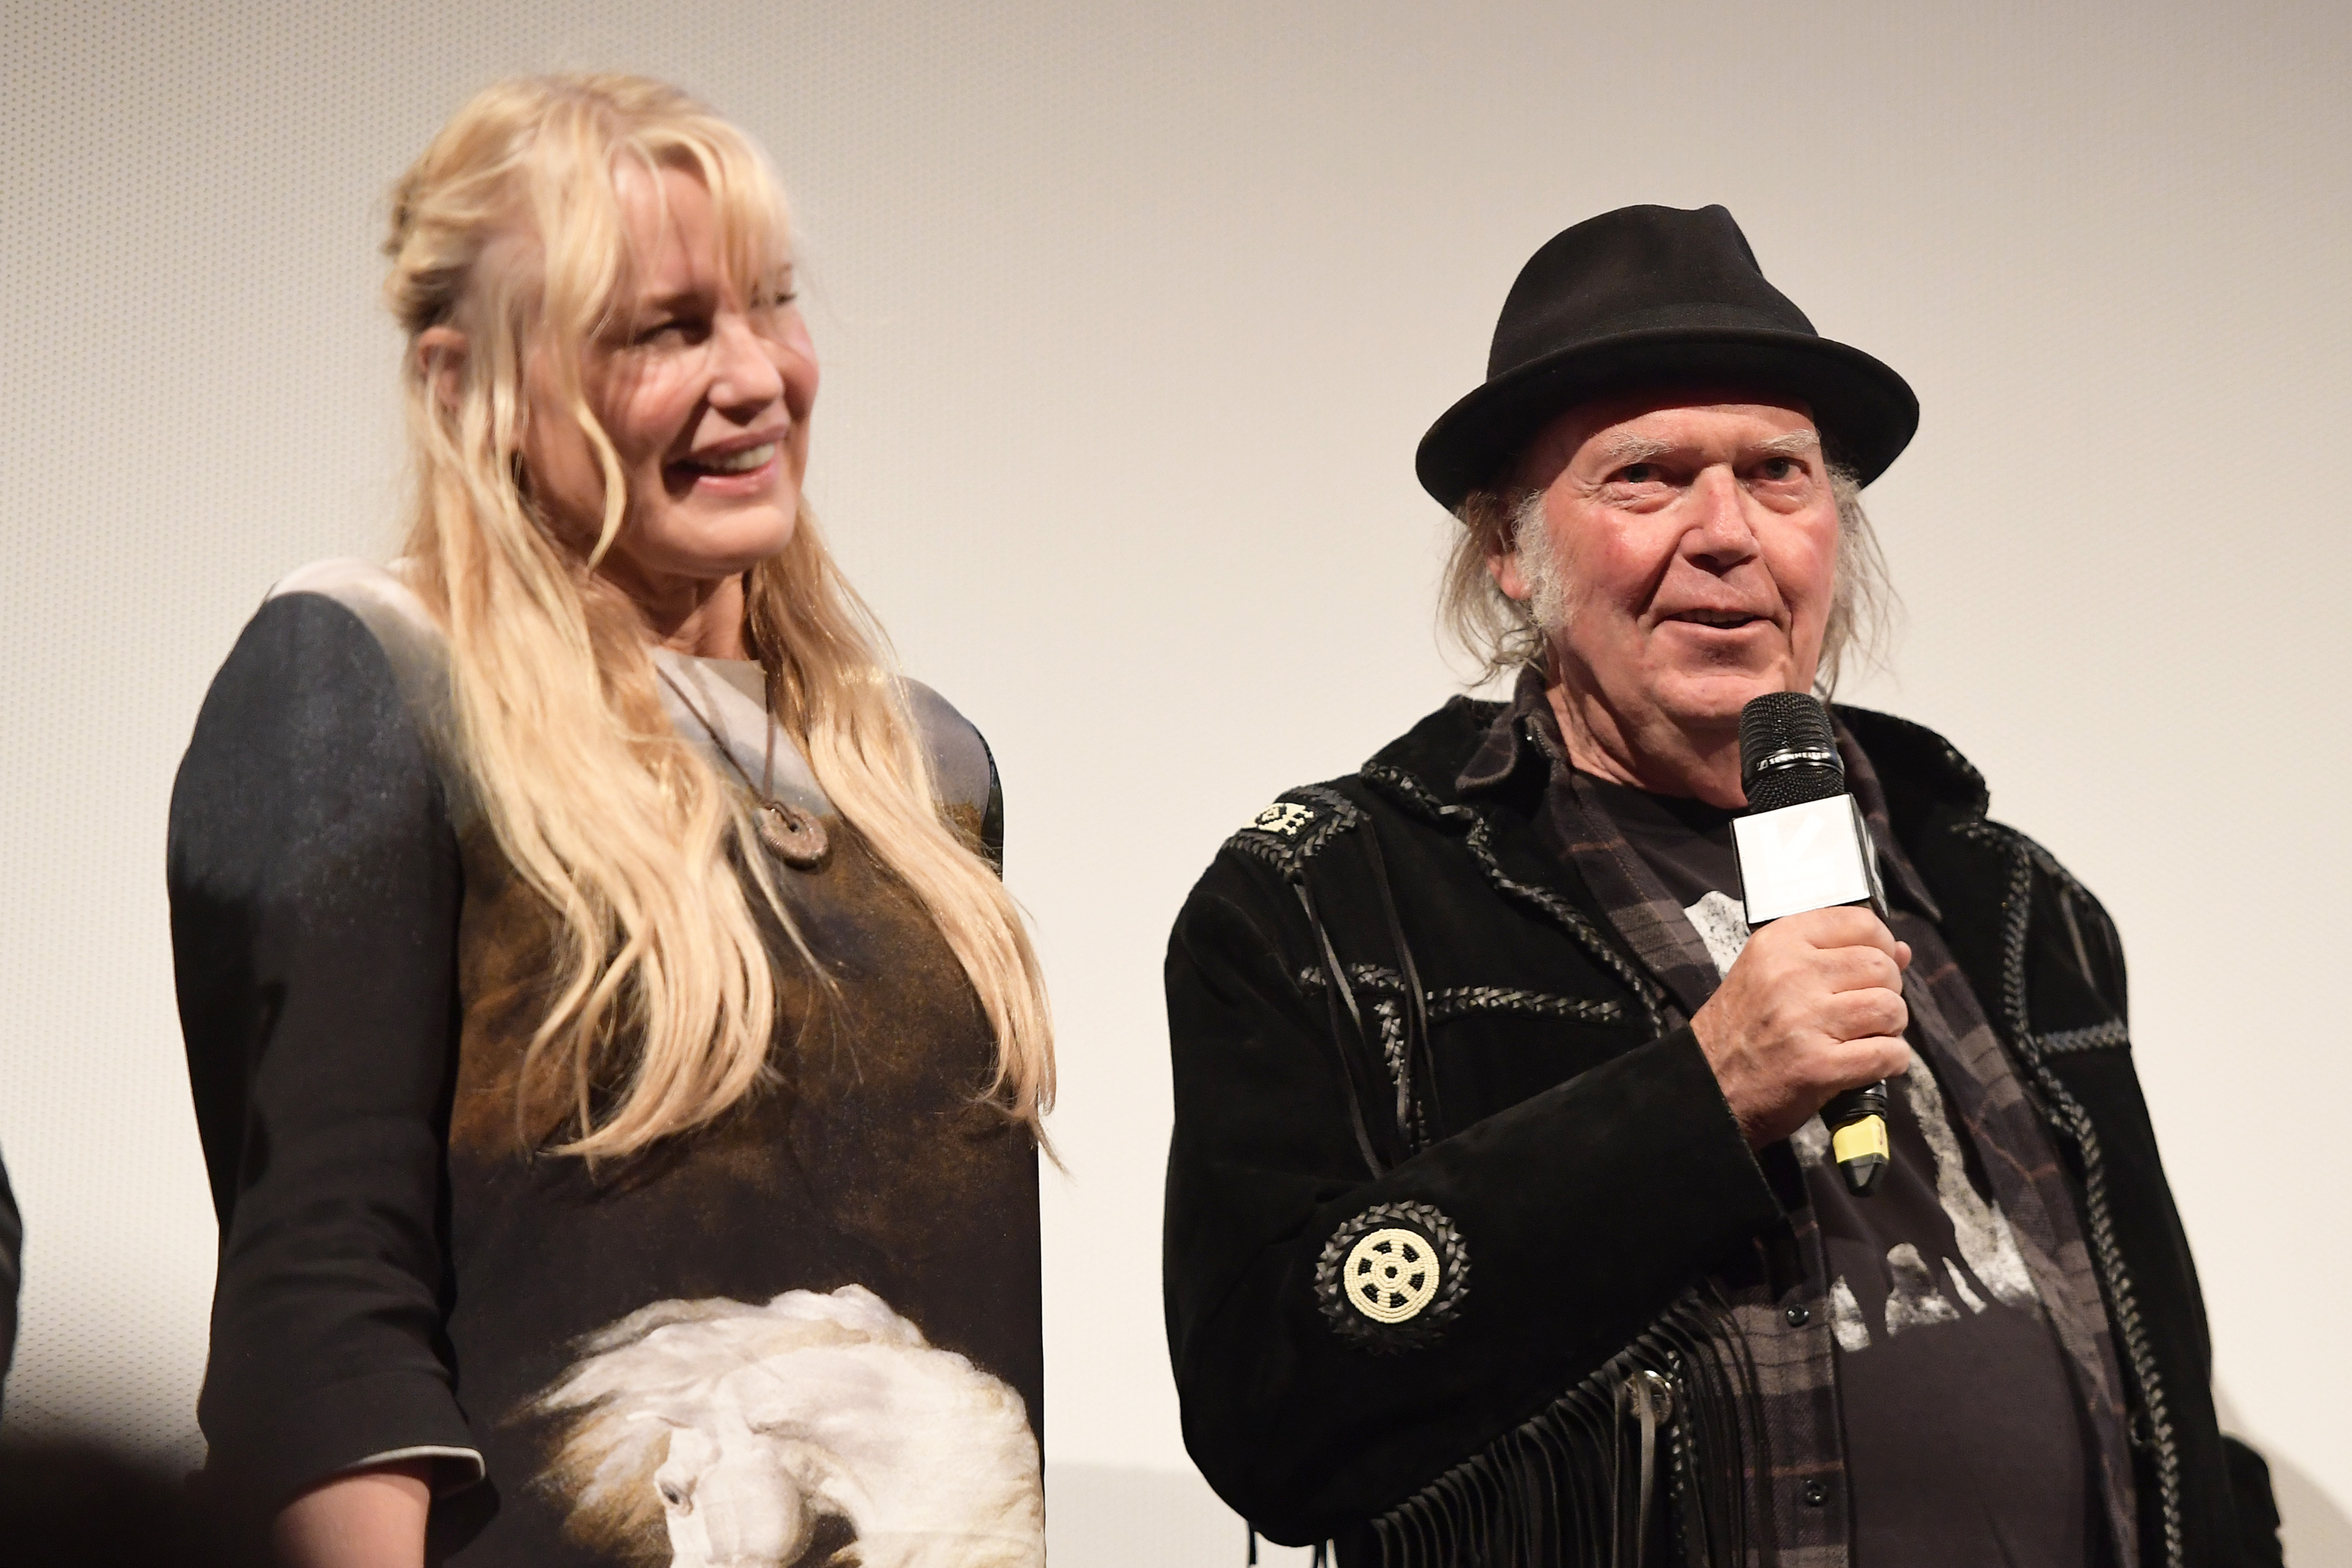 Fans seem to believe Neil Young and Daryl Hannah secretly got married